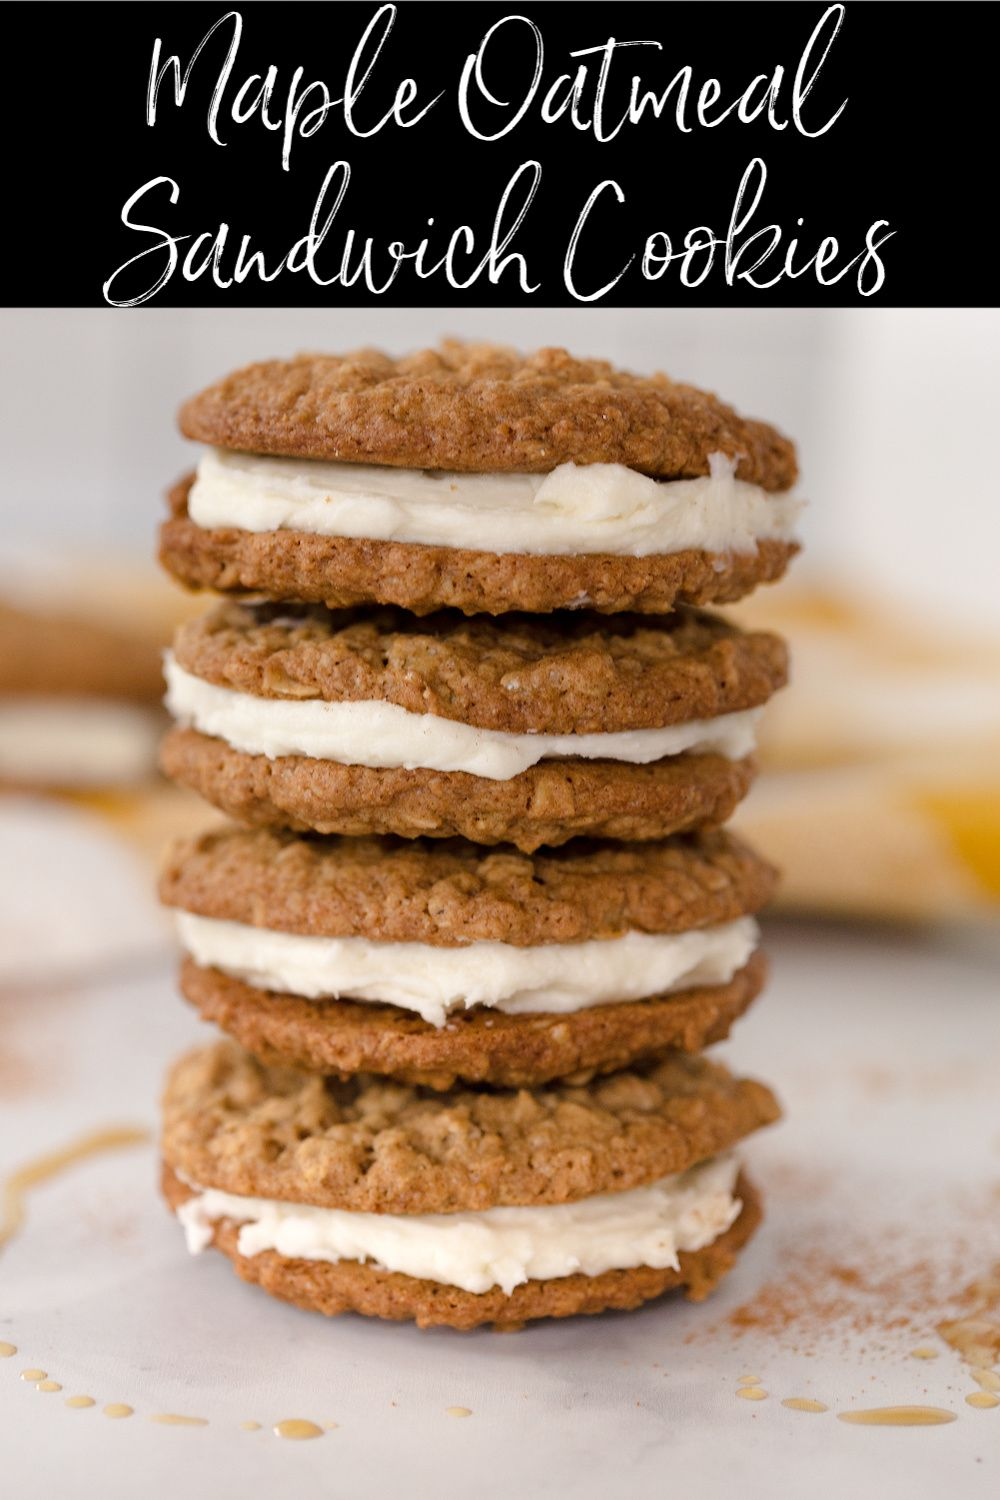 Maple Oatmeal Sandwich Cookies